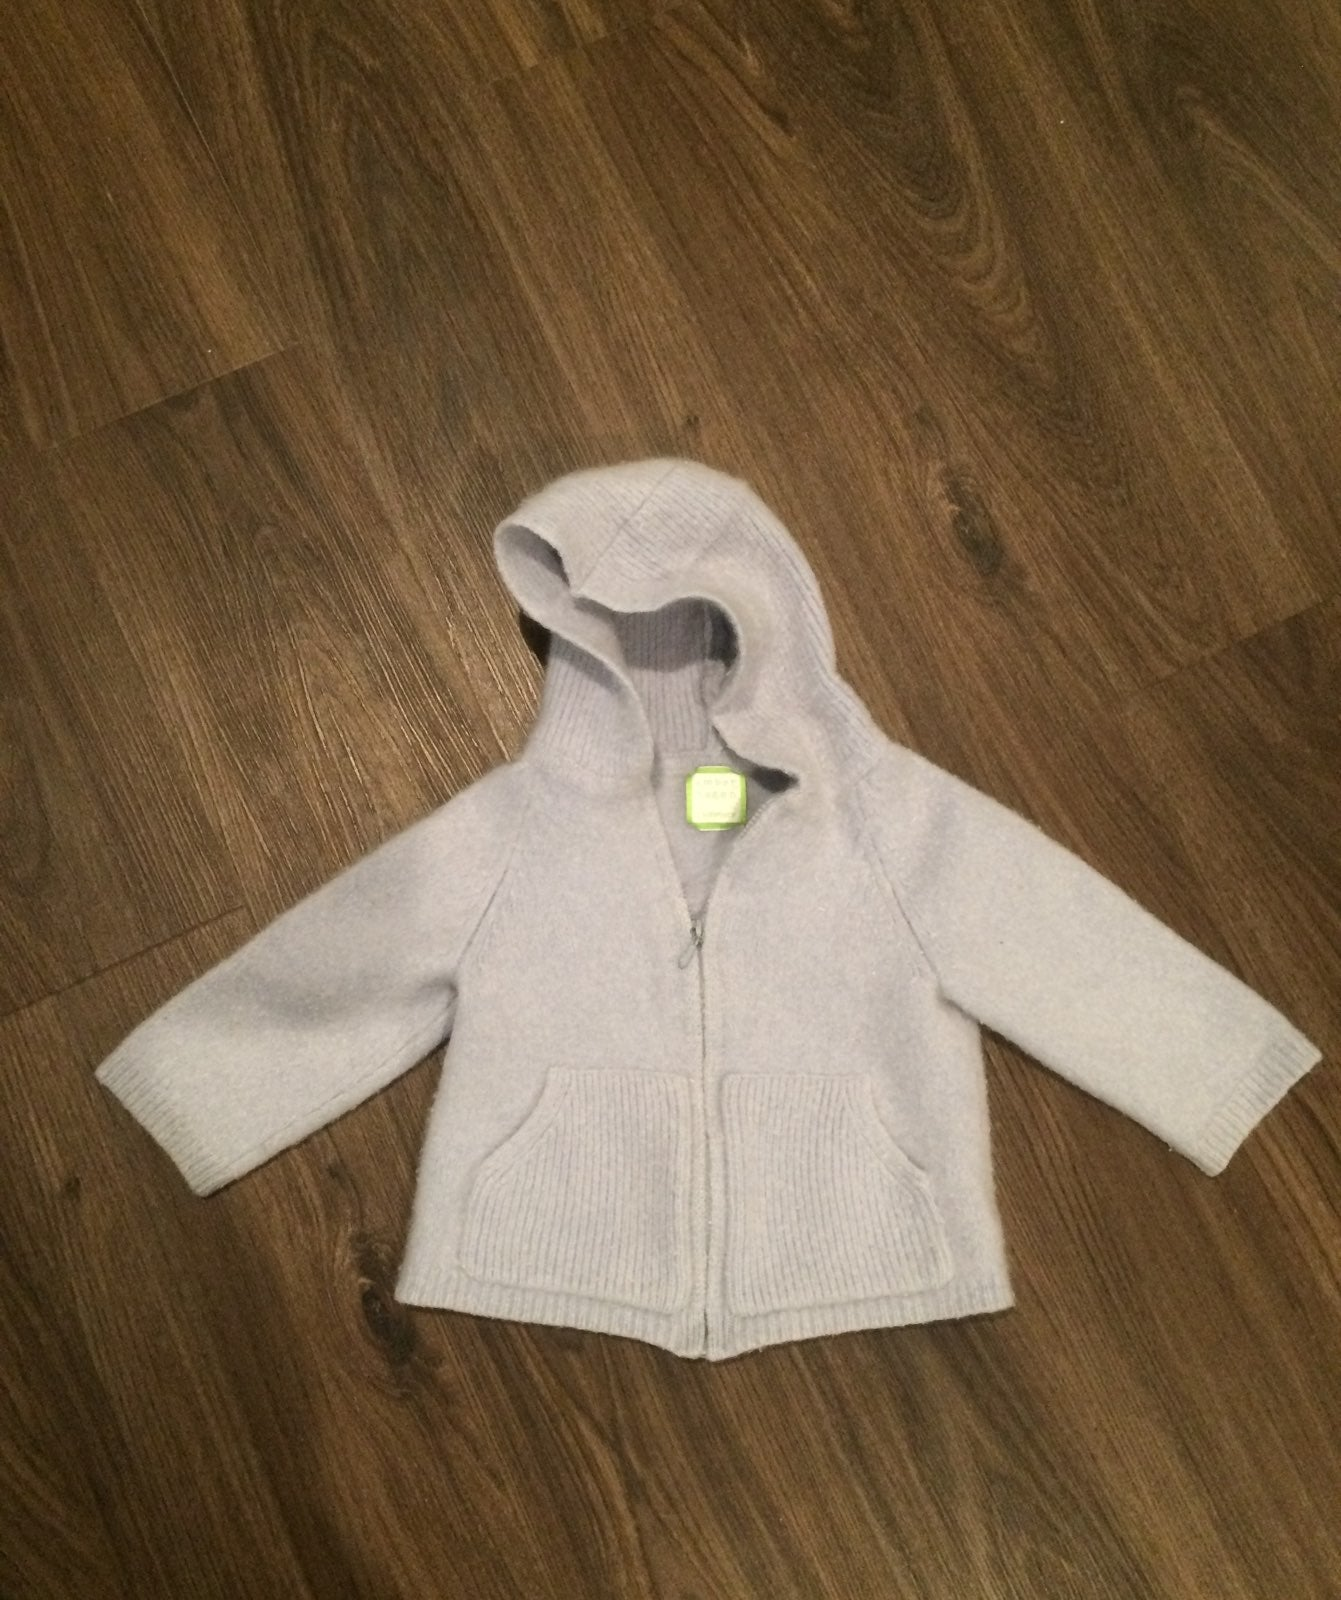 Baby Cashmere Hoodie Sweater! Size 12-18